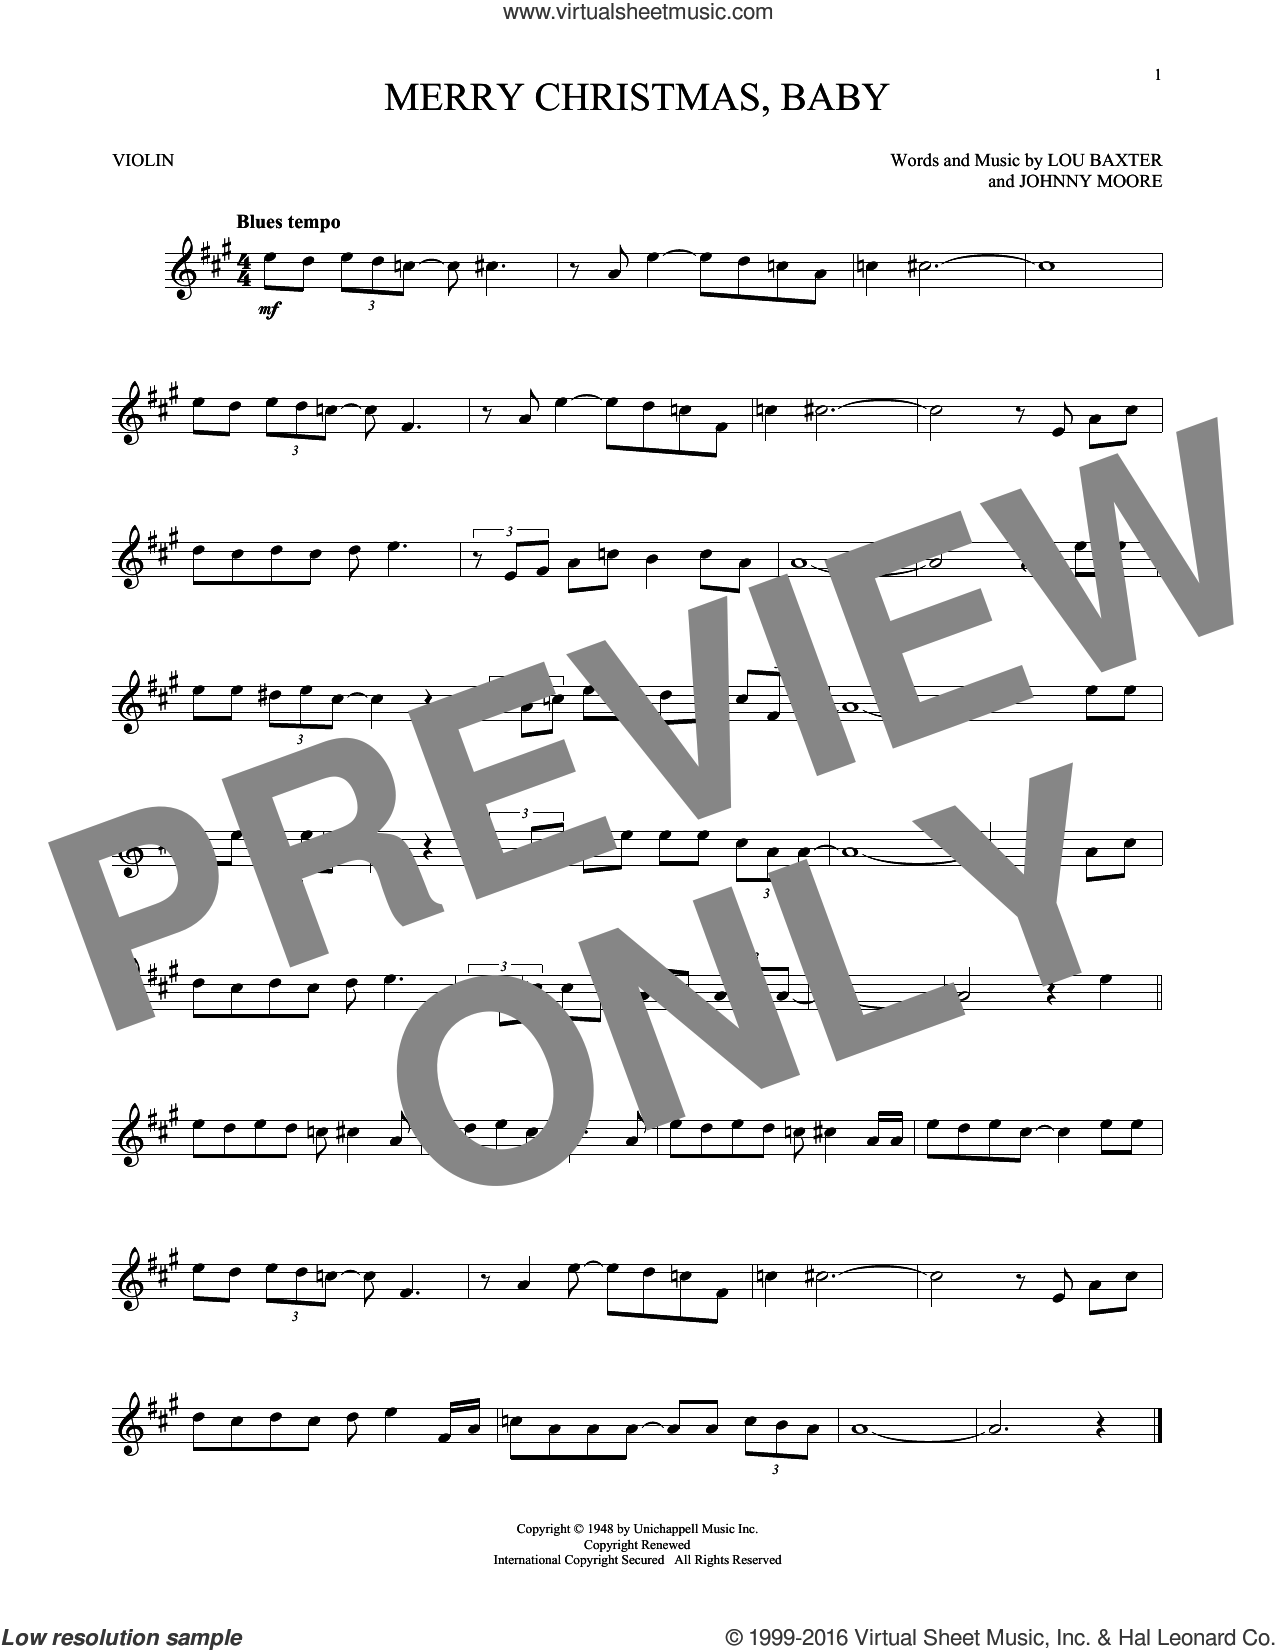 Merry Christmas, Baby sheet music for violin solo by Elvis Presley, Johnny Moore and Lou Baxter, intermediate skill level